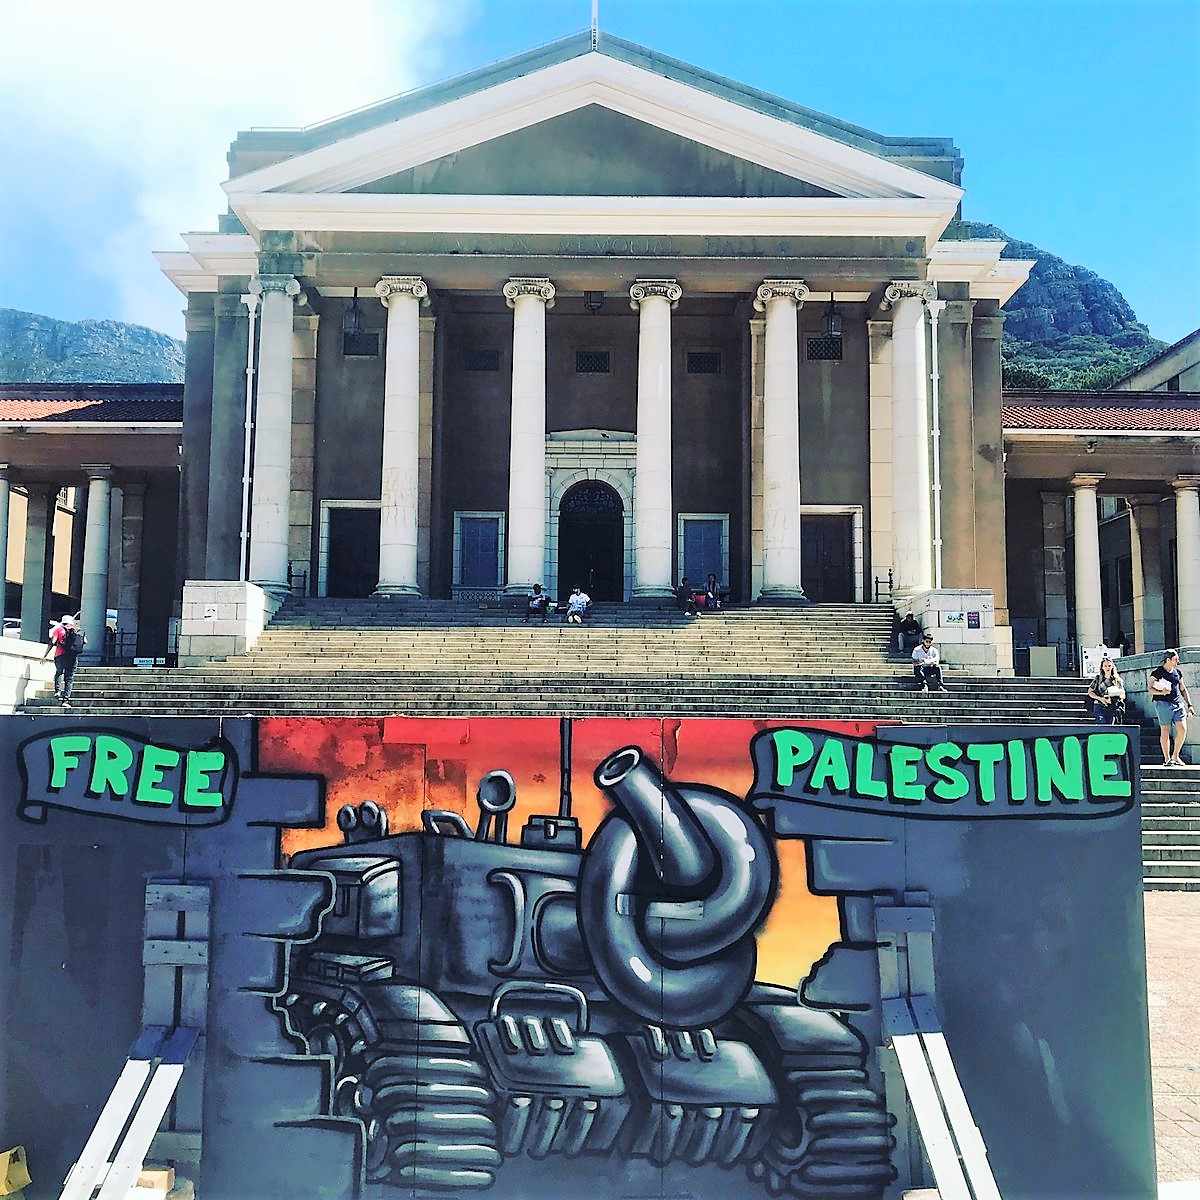 graffiti art Free Palestine at UTC depicting a tanl with its muzzle tied in a knot